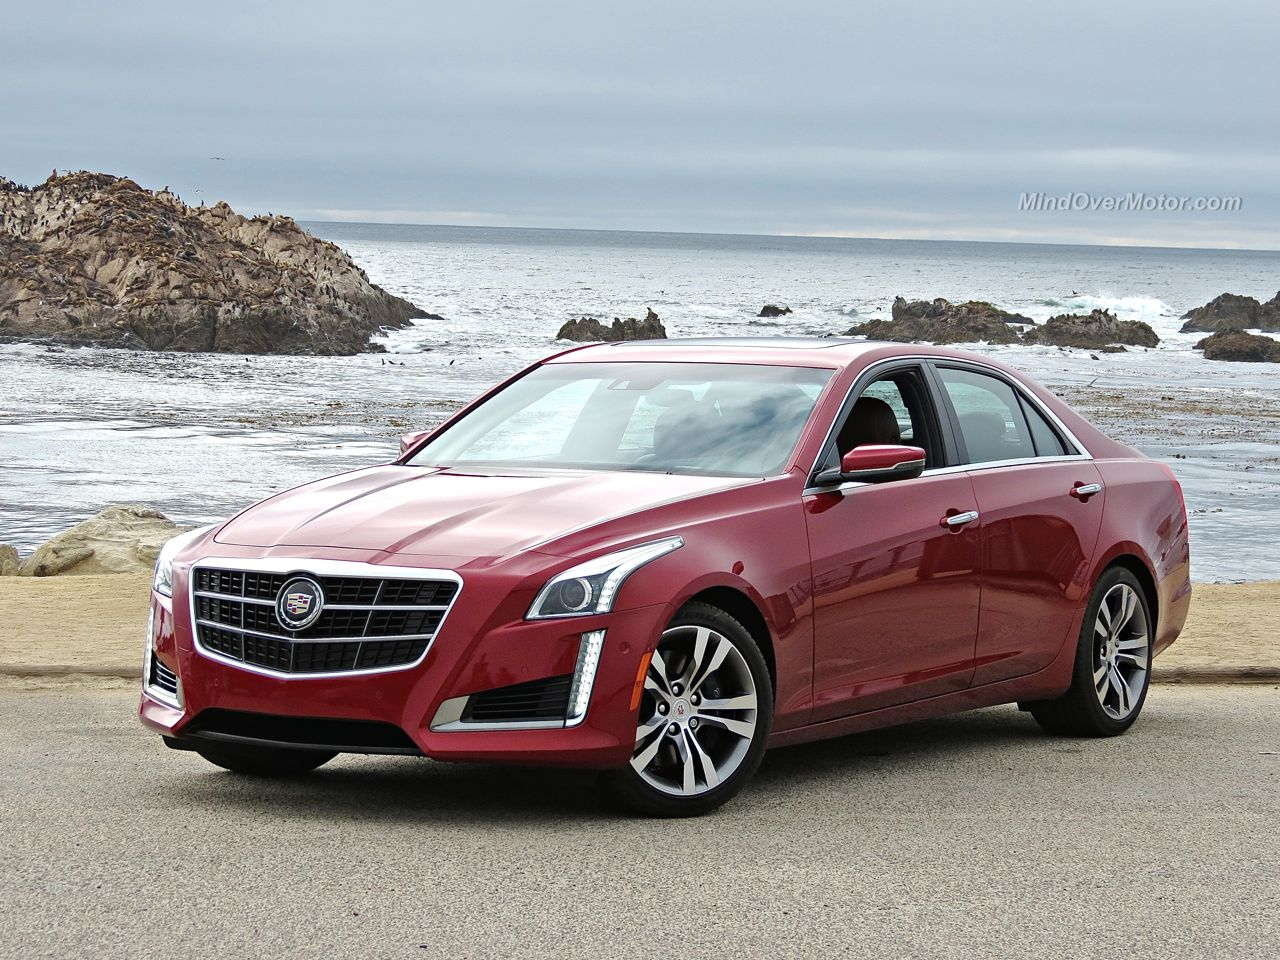 2015 Cadillac CTS Vsport Review | Mind Over Motor